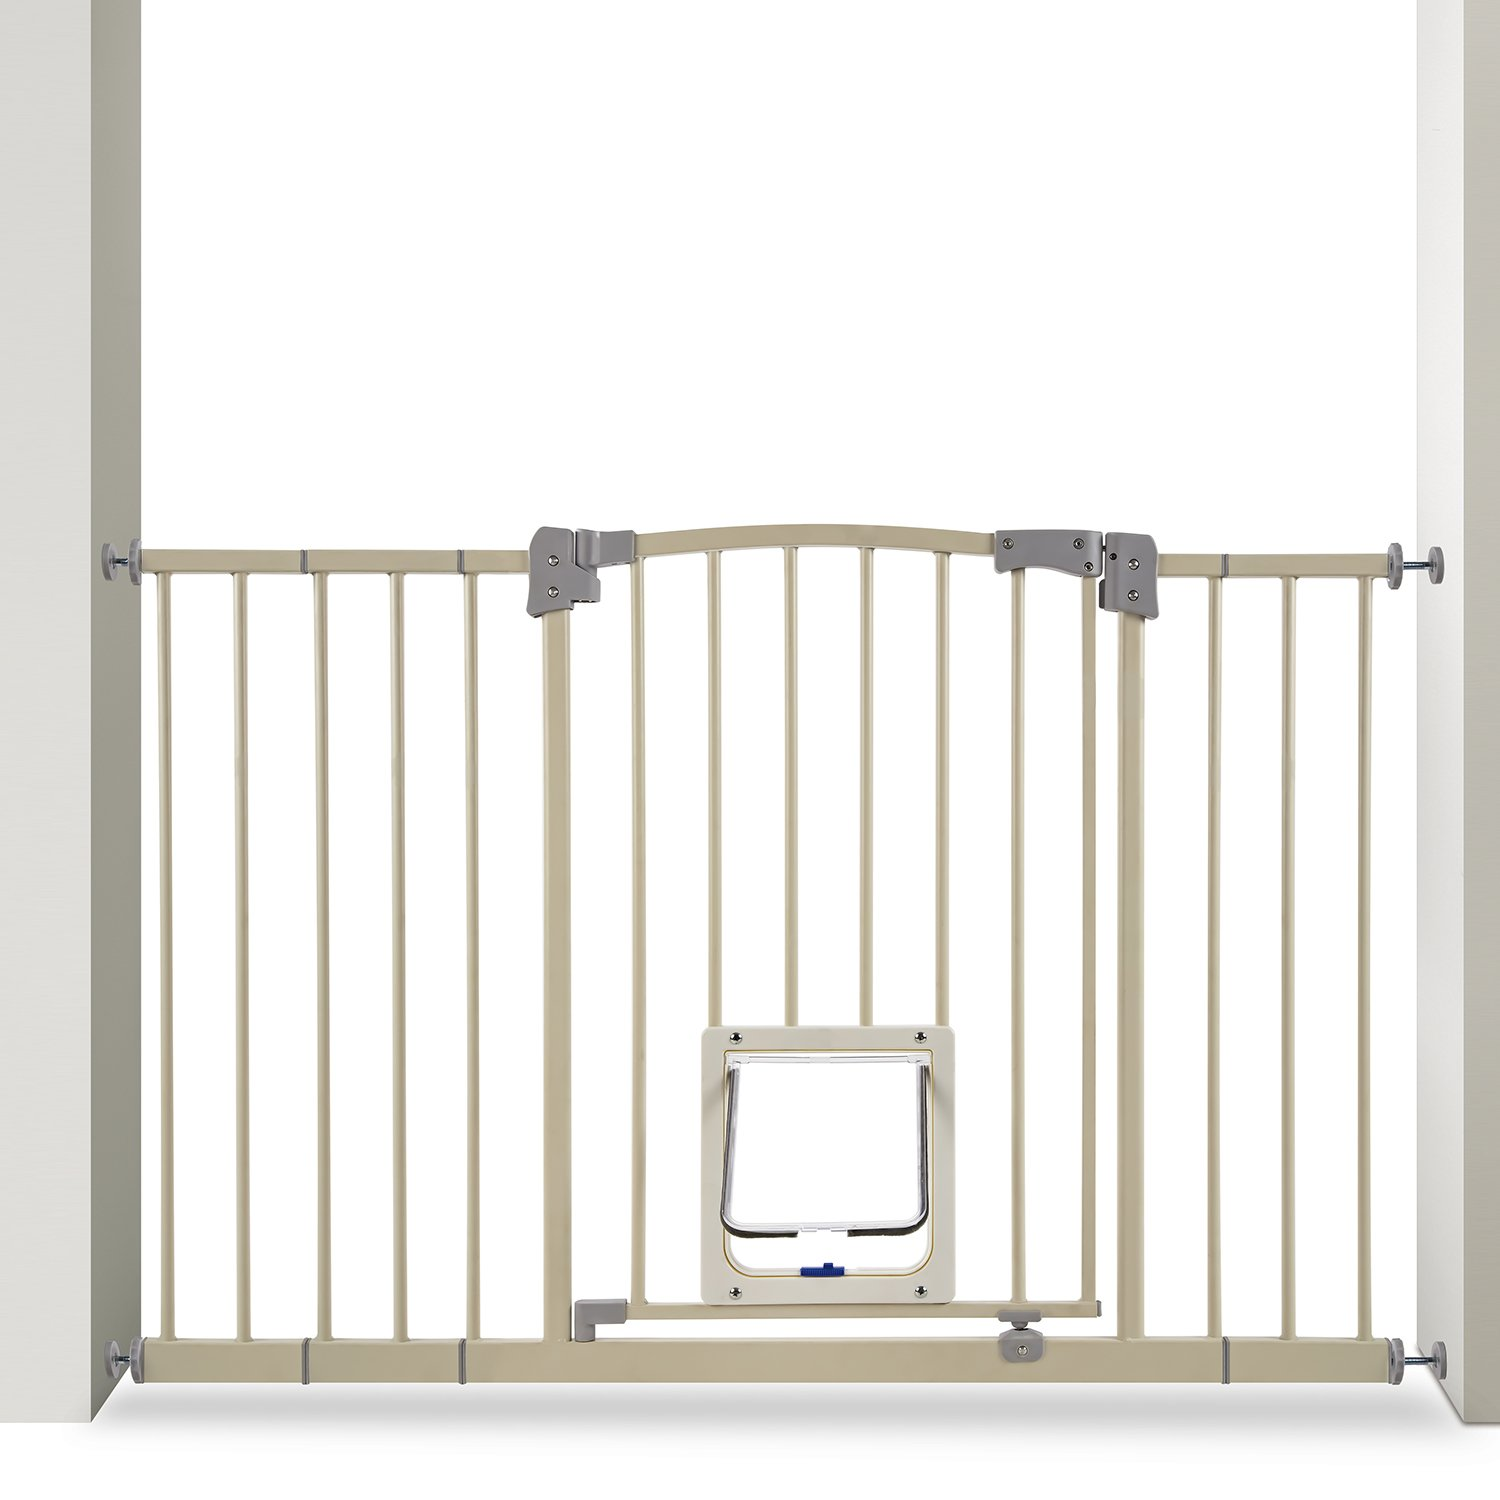 Paws & Pals Dog Gate Multifunctional Indoor Metal Baby Barrier - Adjustable Tall-Wide Fence for House Doorway with Lockable Pet Door Flap- 53'' Max Extendable by Paws & Pals (Image #2)